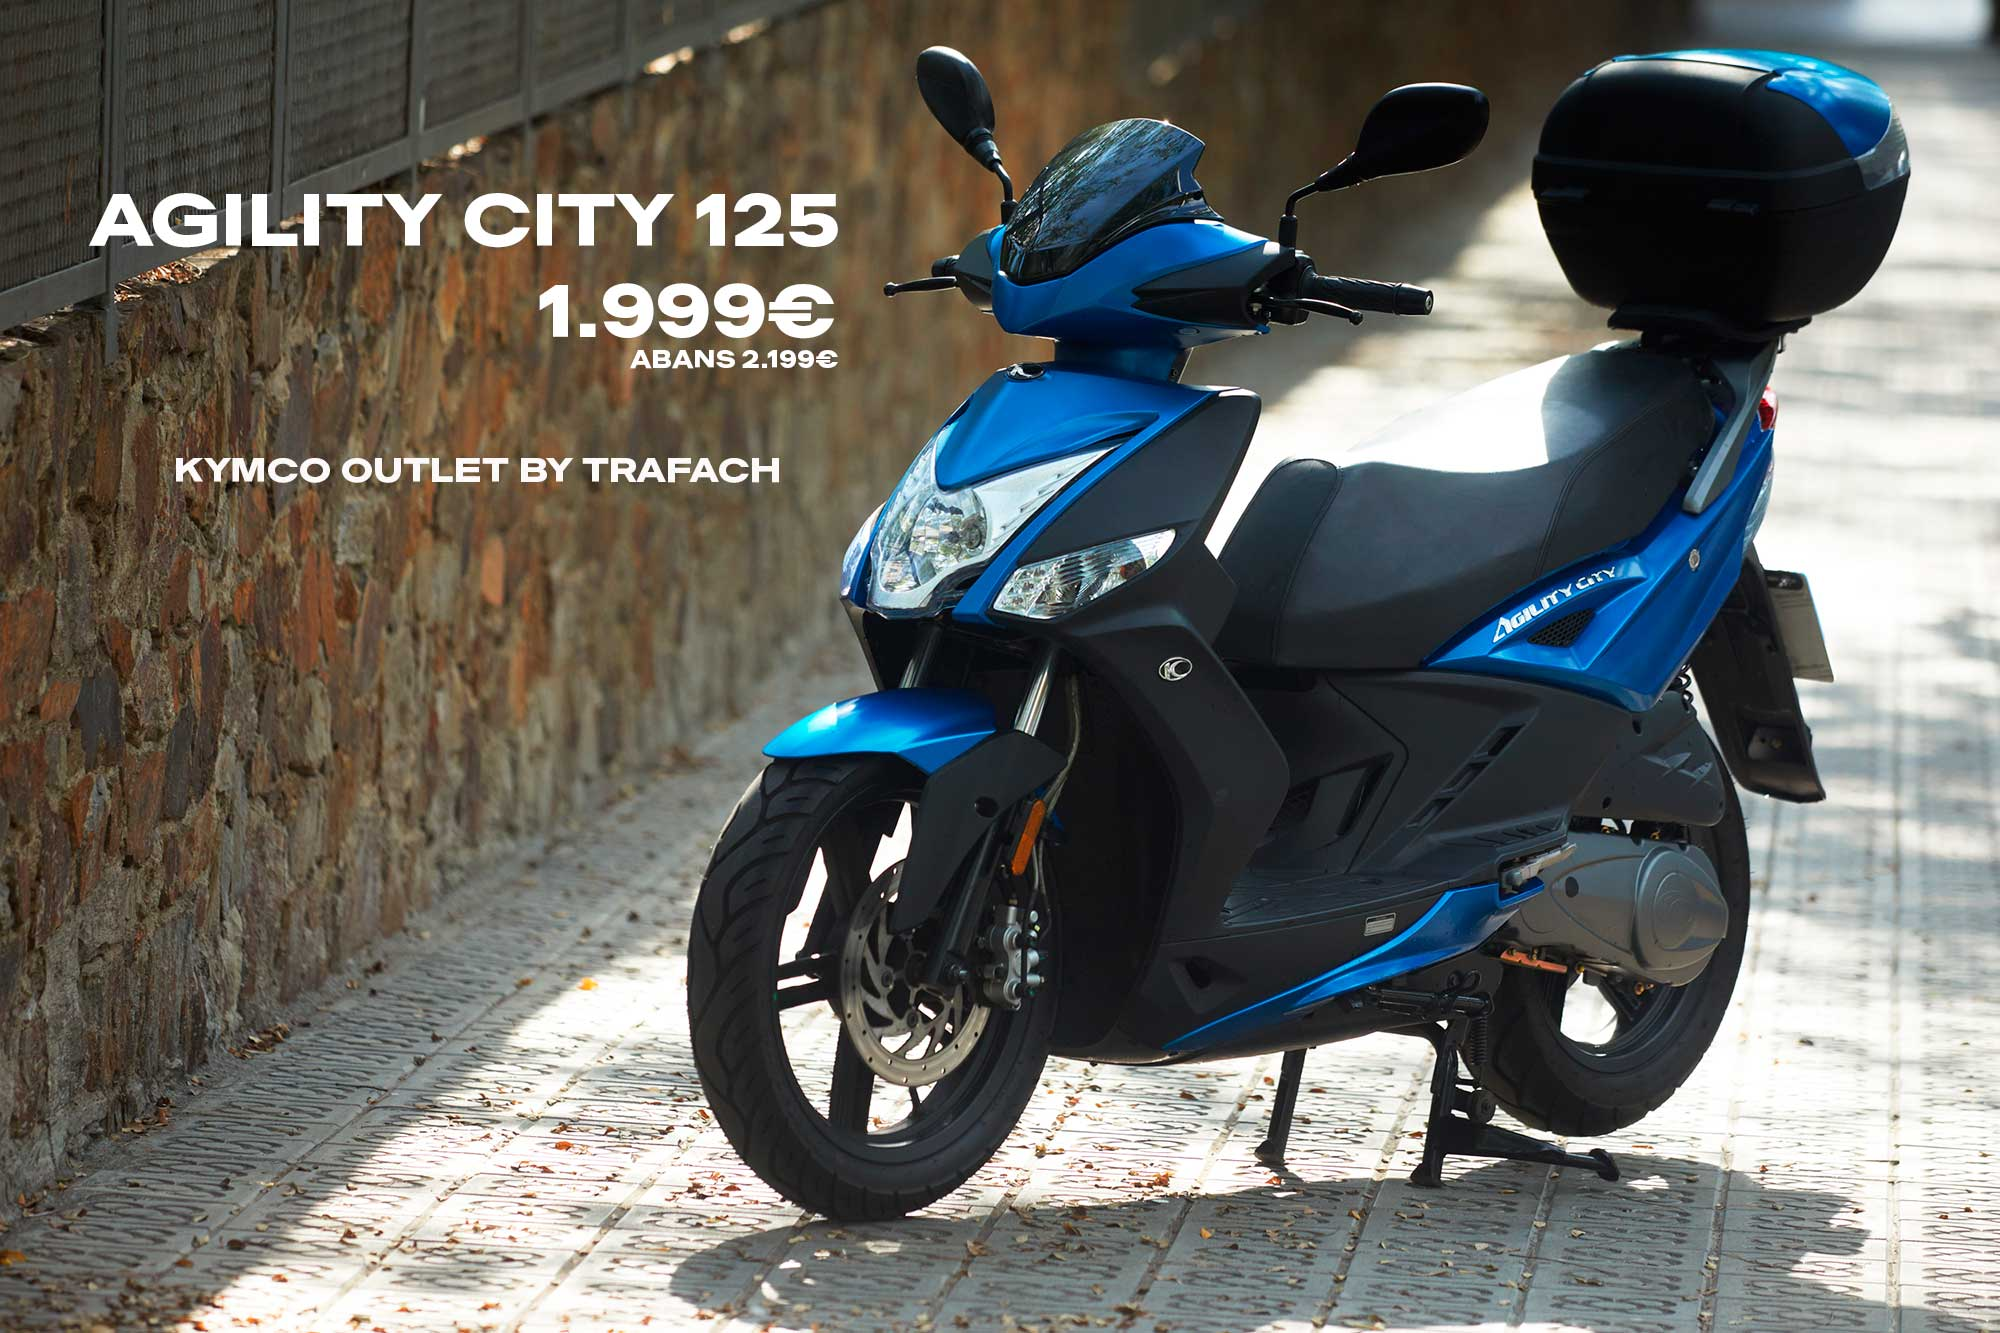 Kymco Outlet